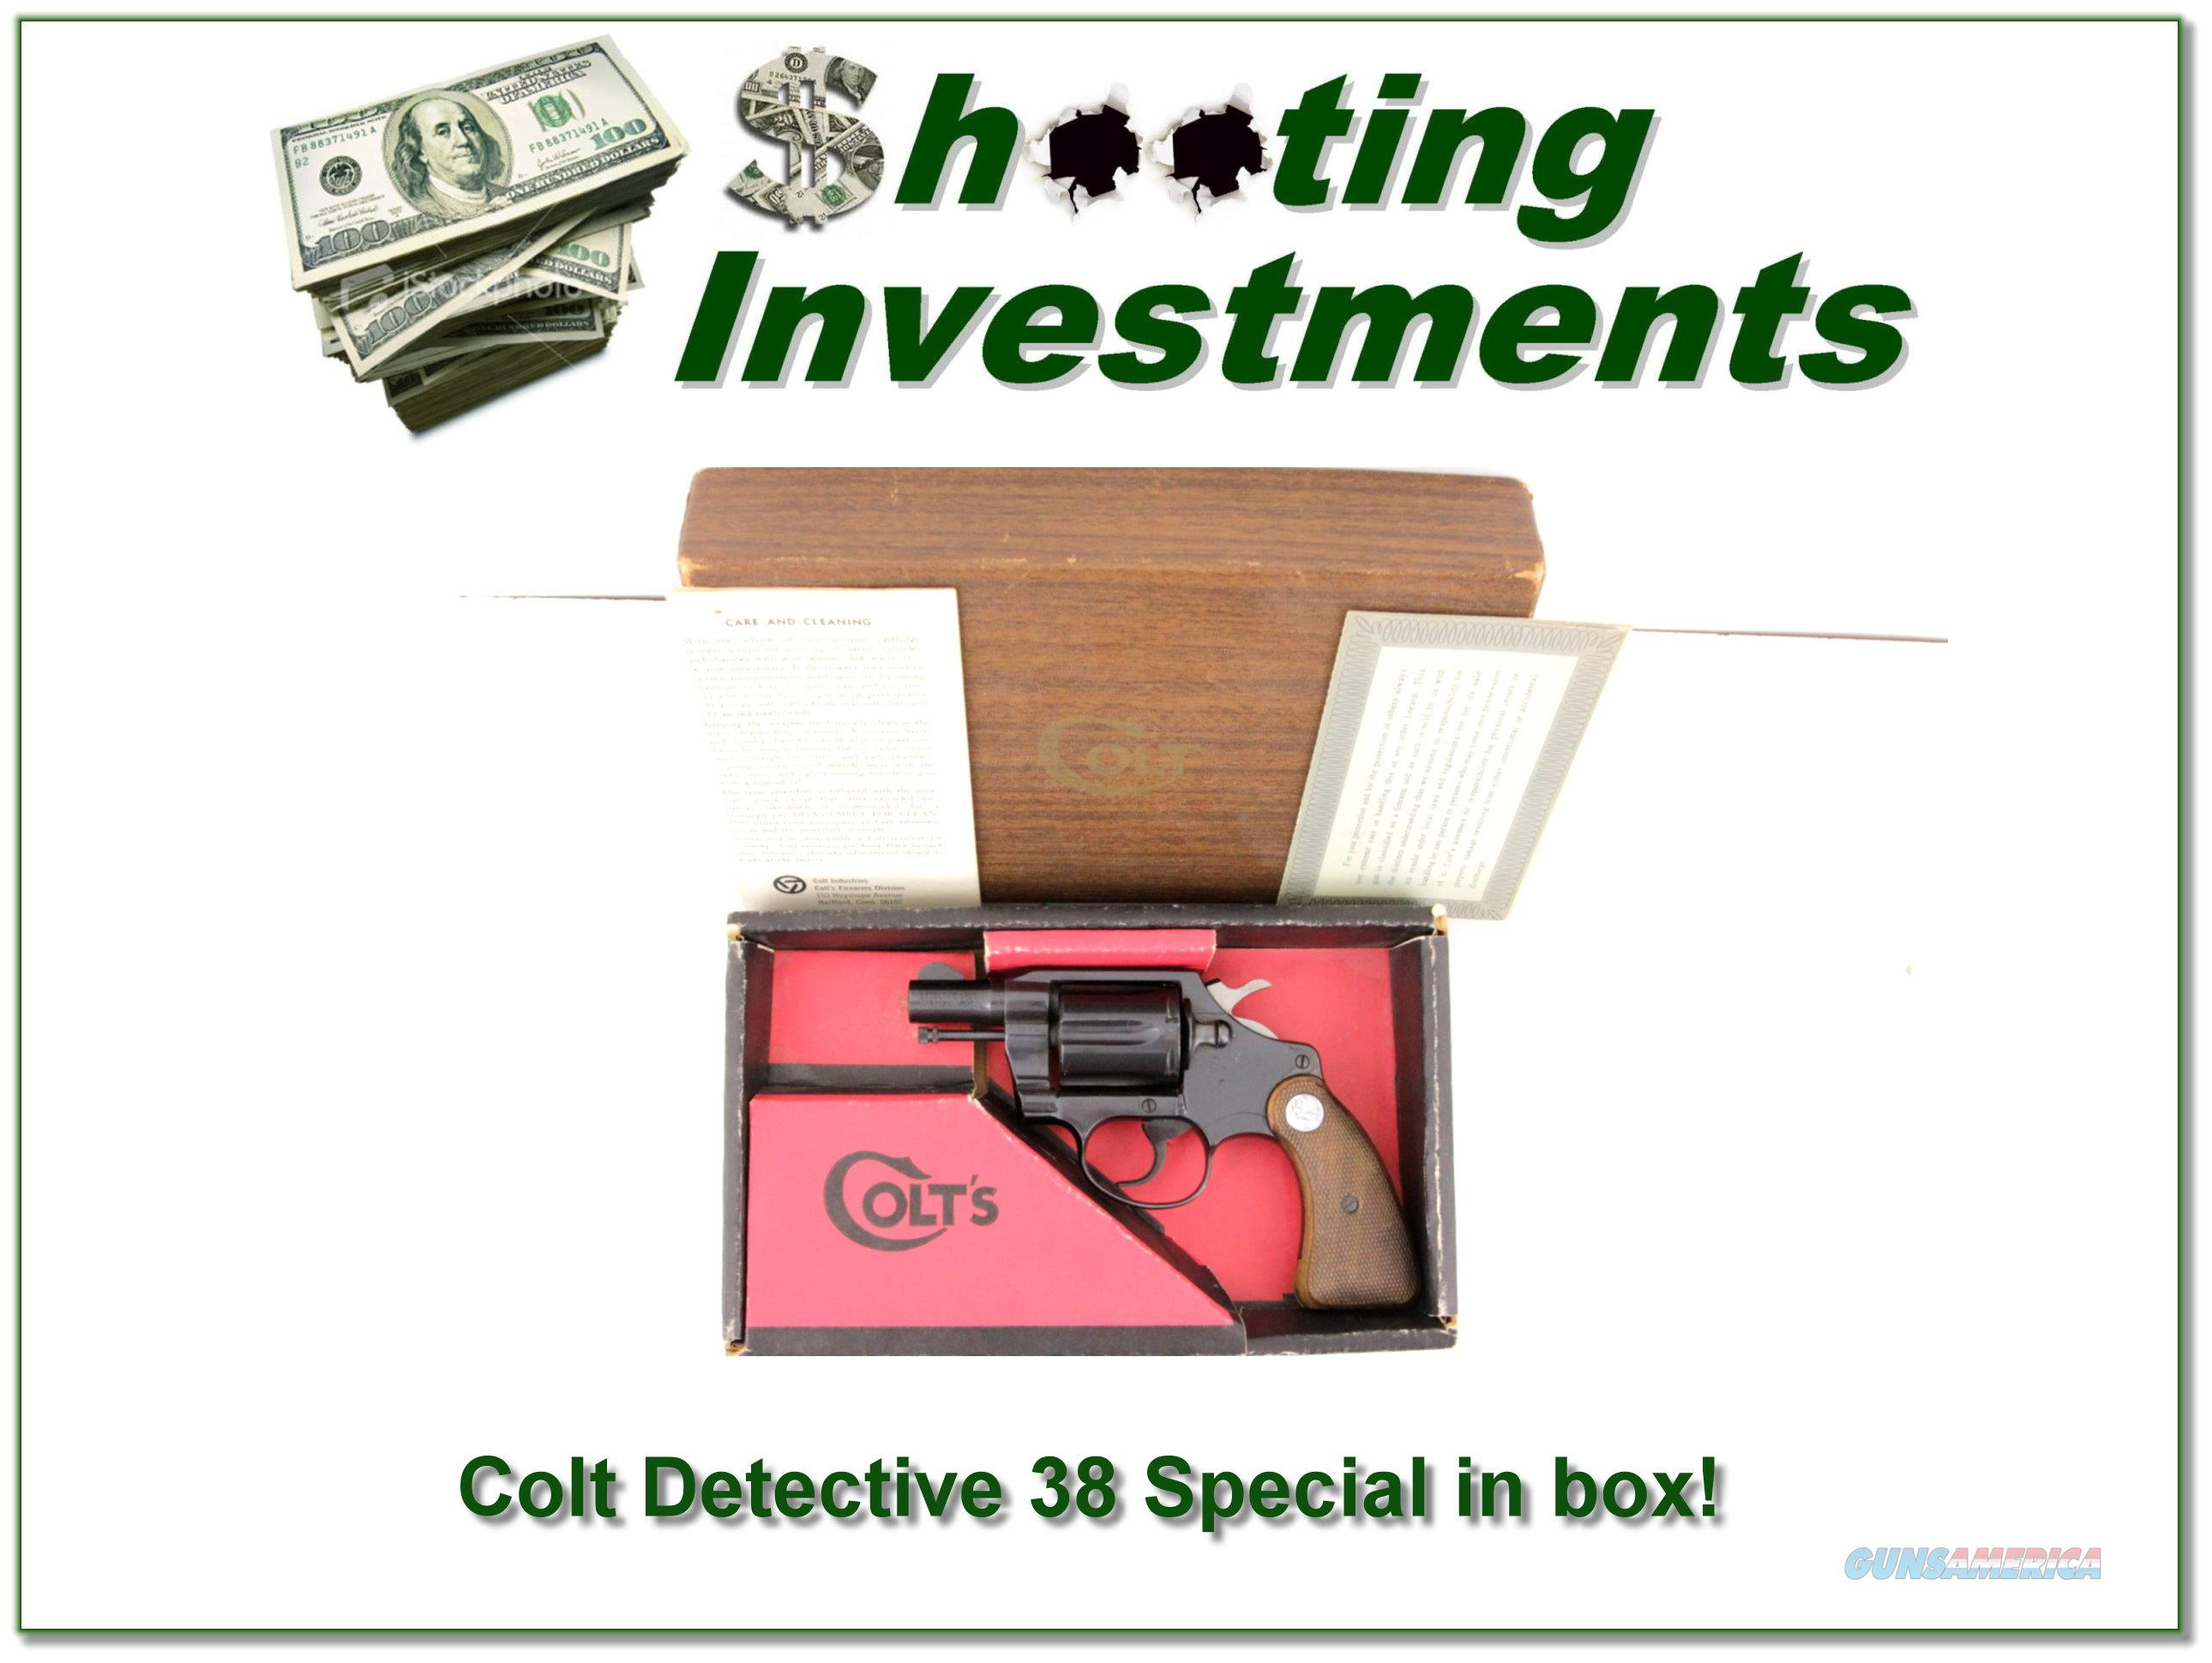 Colt Detective Special 2in 38 in box!  Guns > Pistols > Colt Double Action Revolvers- Modern